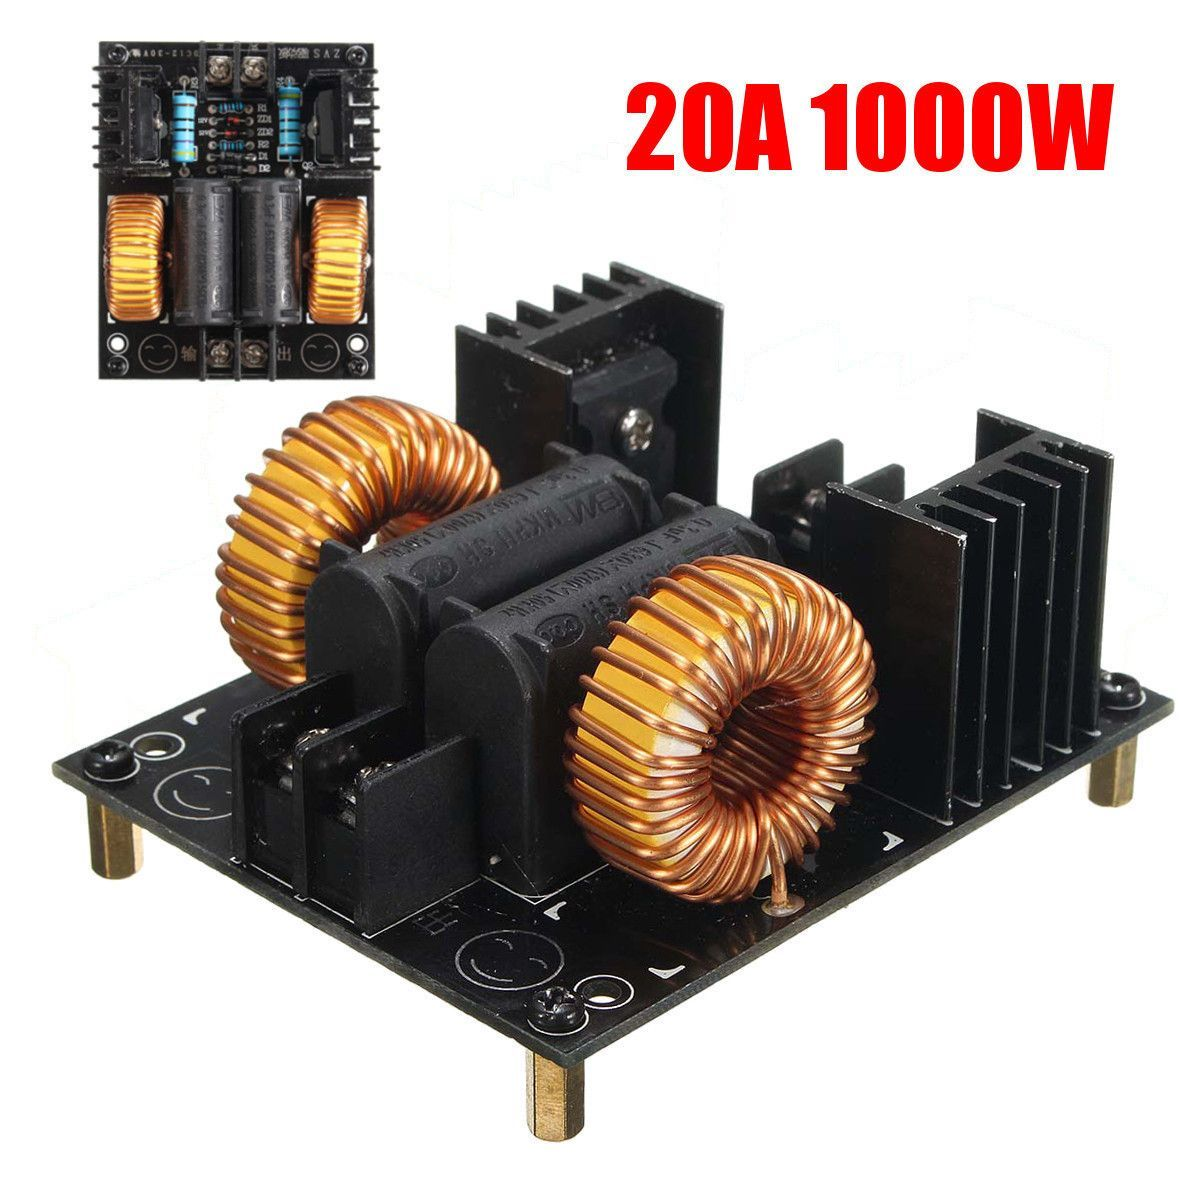 20a 1000w Zvs Low Voltage Induction Heating Board Module